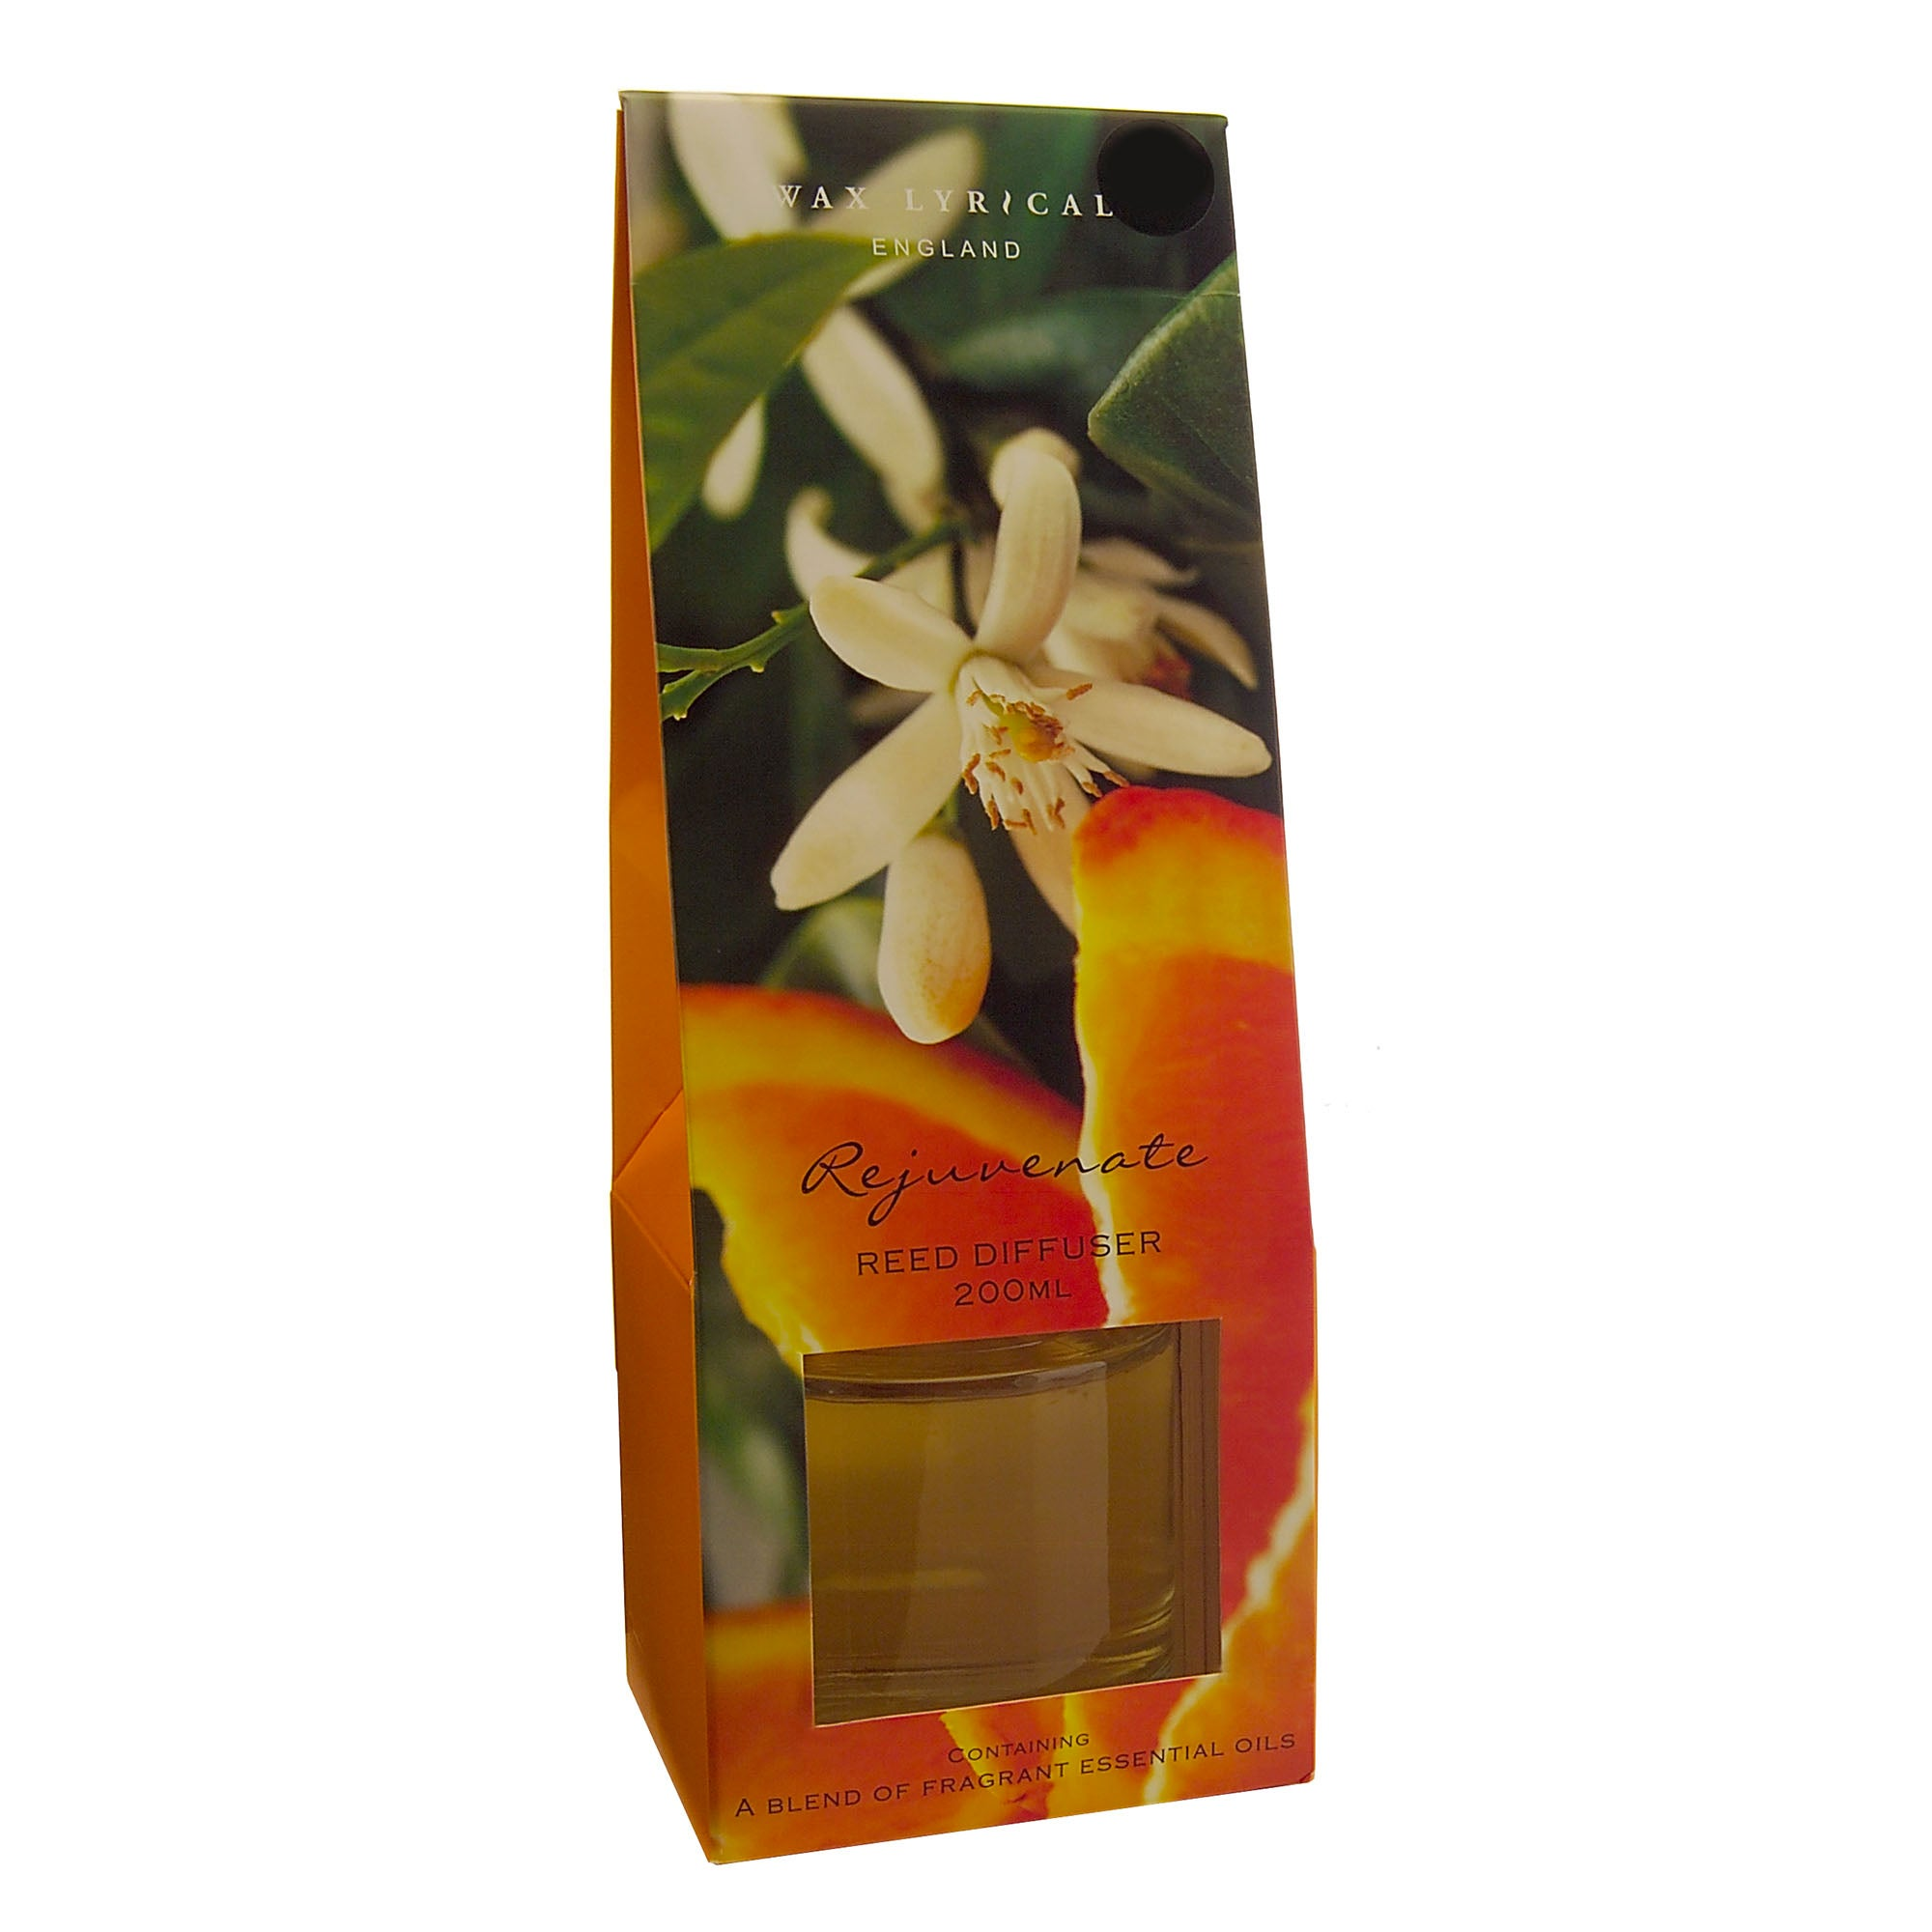 Wax Lyrical Rejuvenate 200ml Reed Diffuser